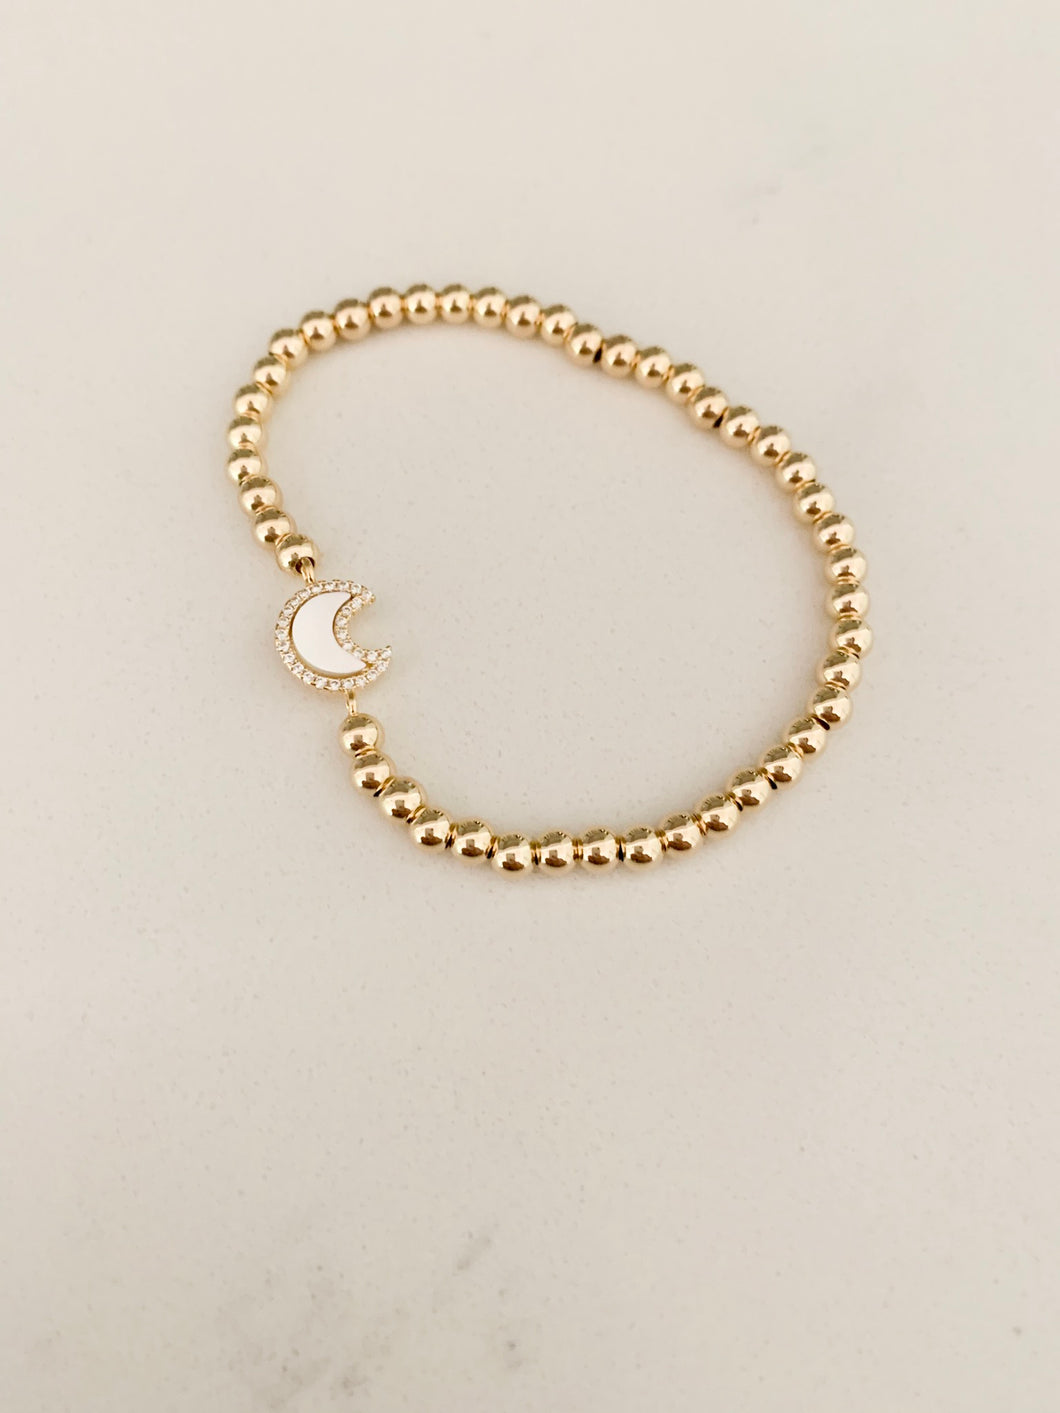 Mother of Pearl CZ Moon Bracelet- Gold Beads